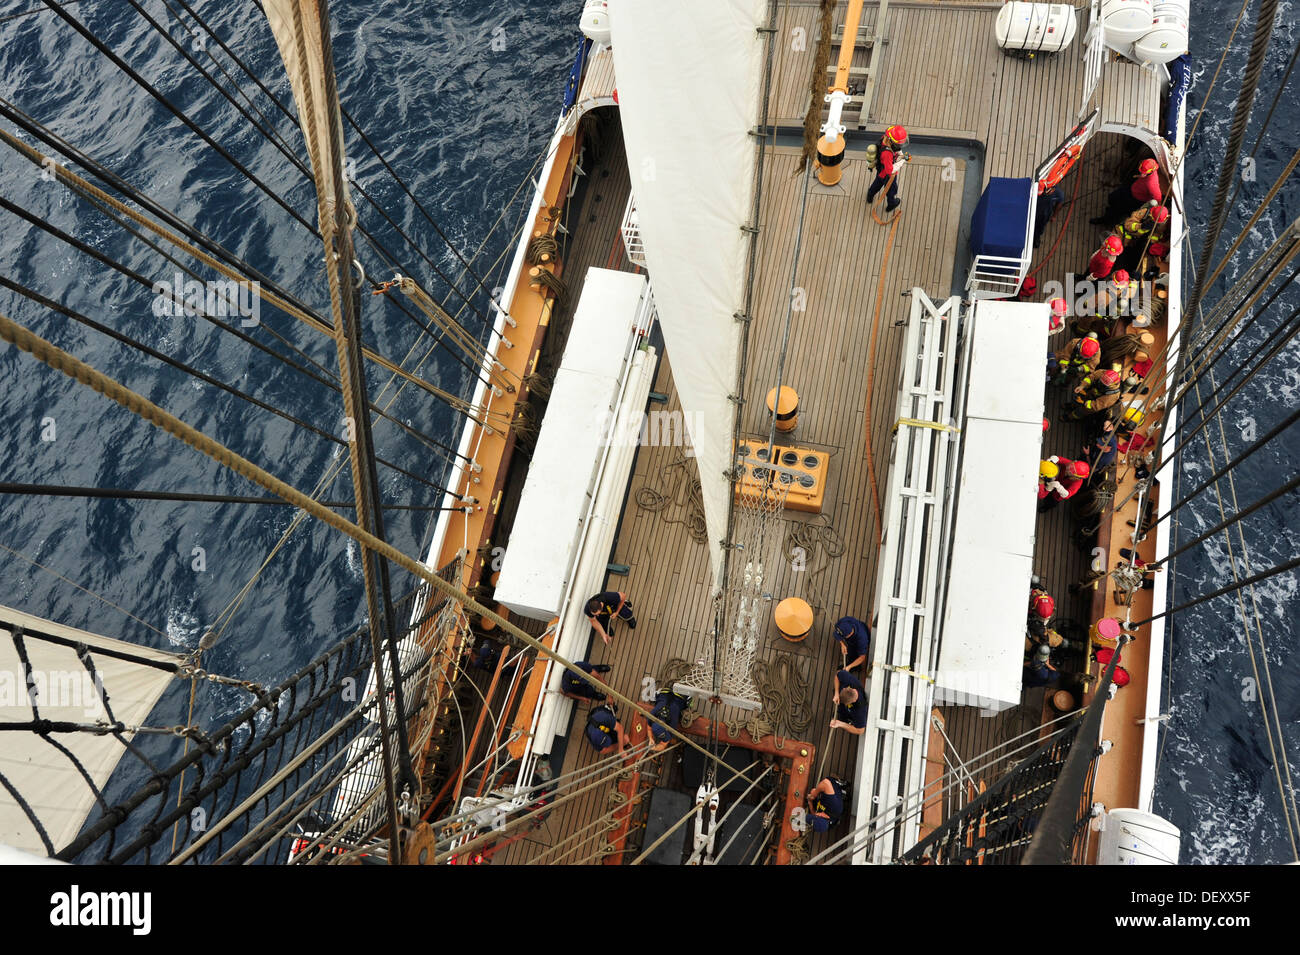 Officer candidates conduct fire drills and line handling aboard the Coast Guard Barque Eagle on Monday, Sept. 16, 2013. A ship's crew must be well trained in damage control and seamanship. - Stock Image